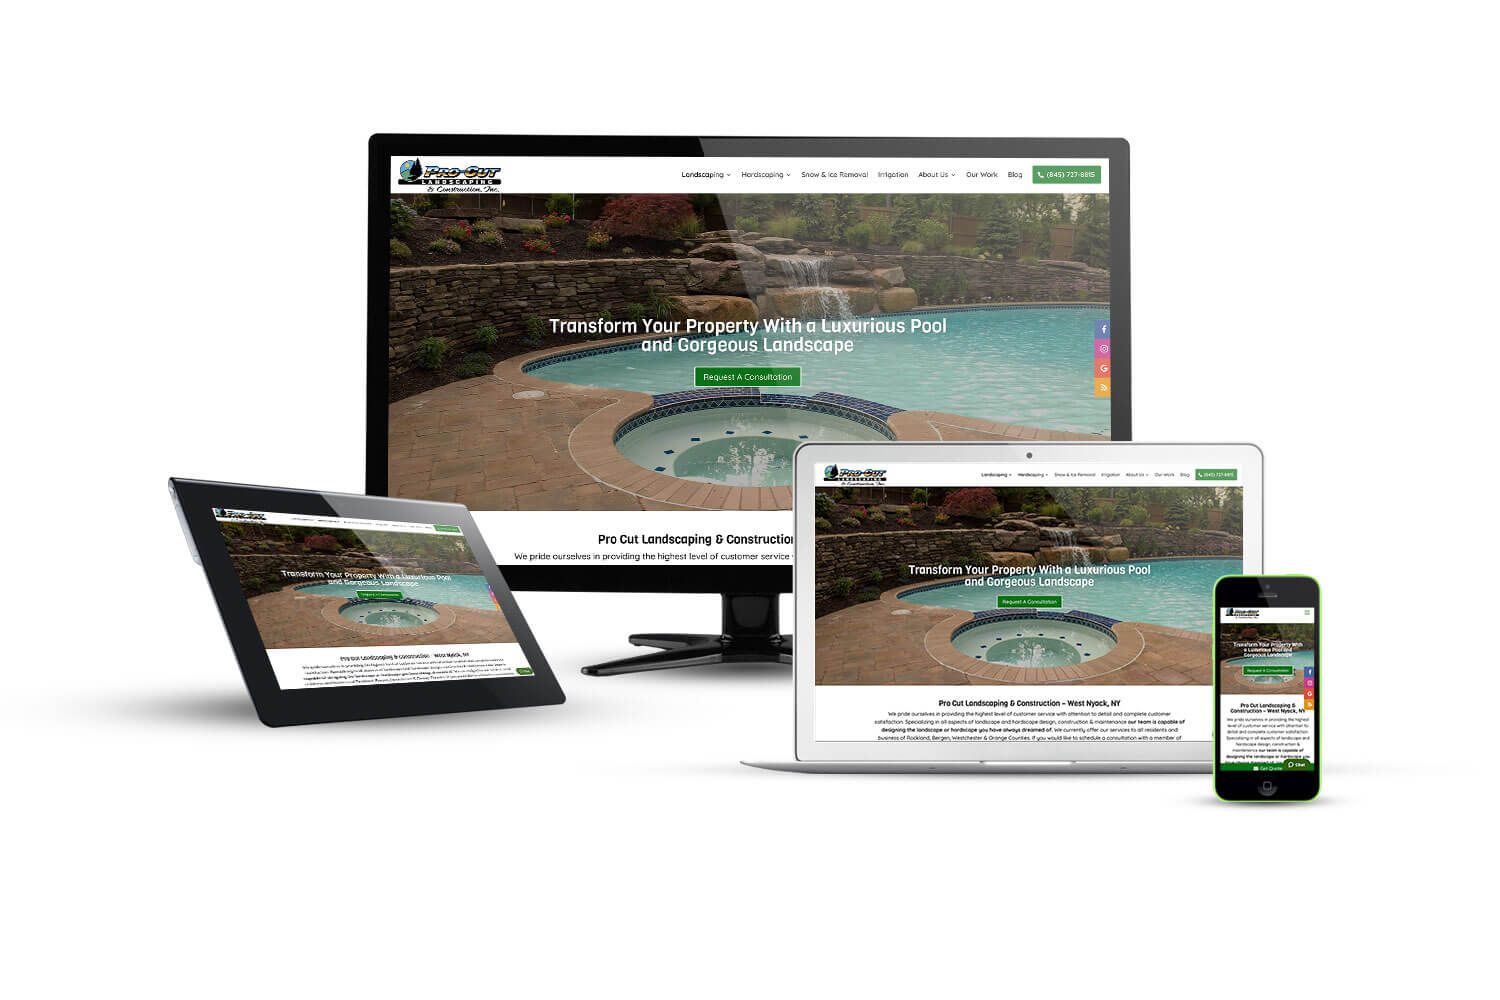 Procut Landscaping - Eternal NYC Website Design